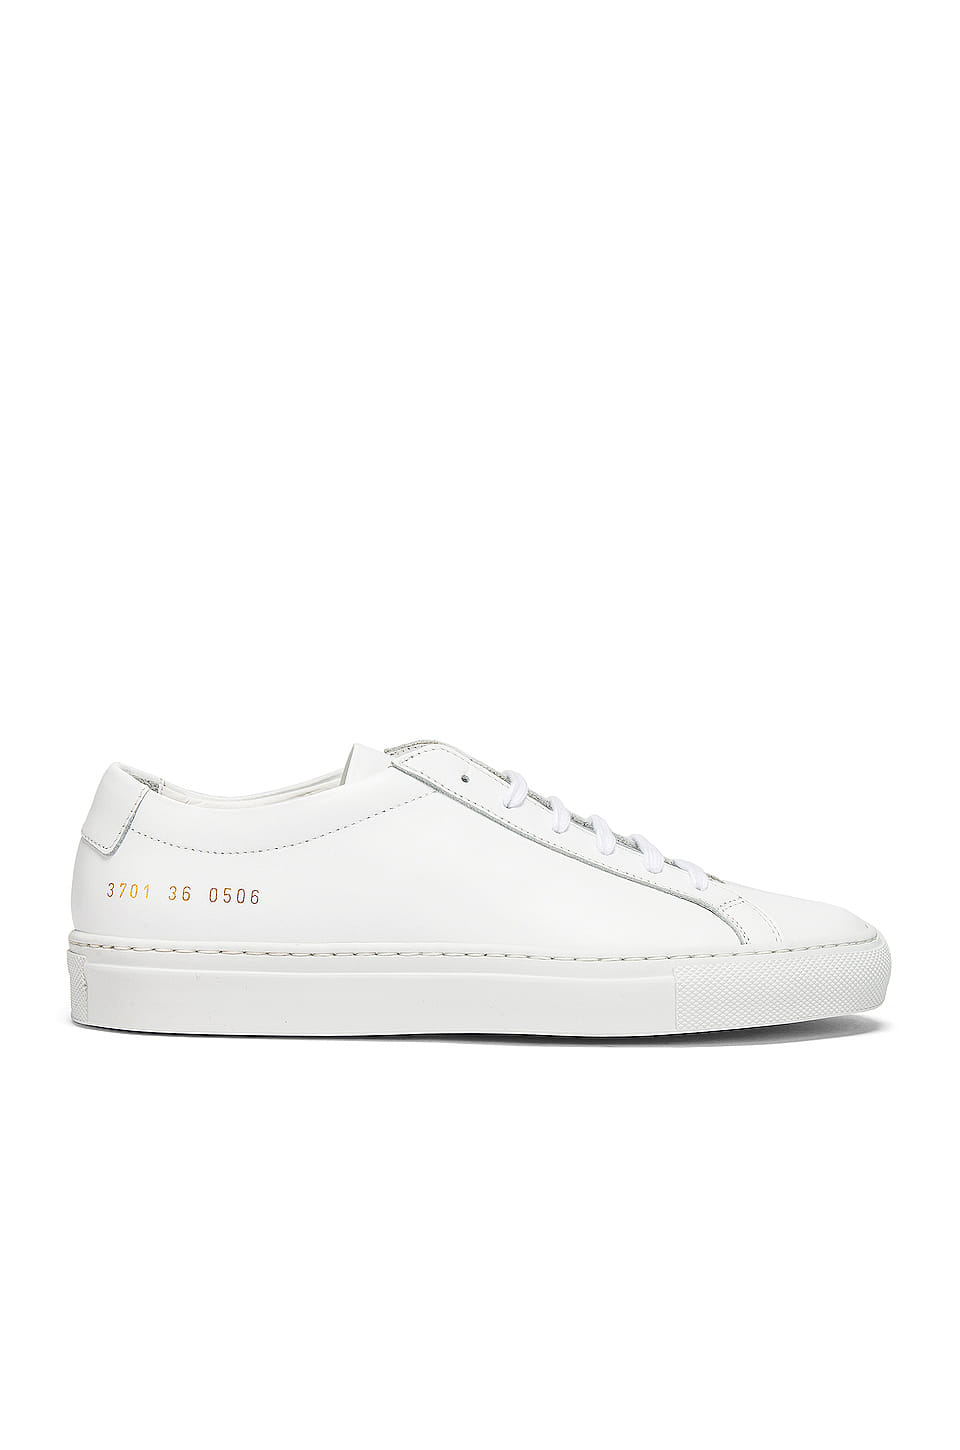 32254afba2de Buy Original Common Projects Original Achilles Low Sneaker at ...